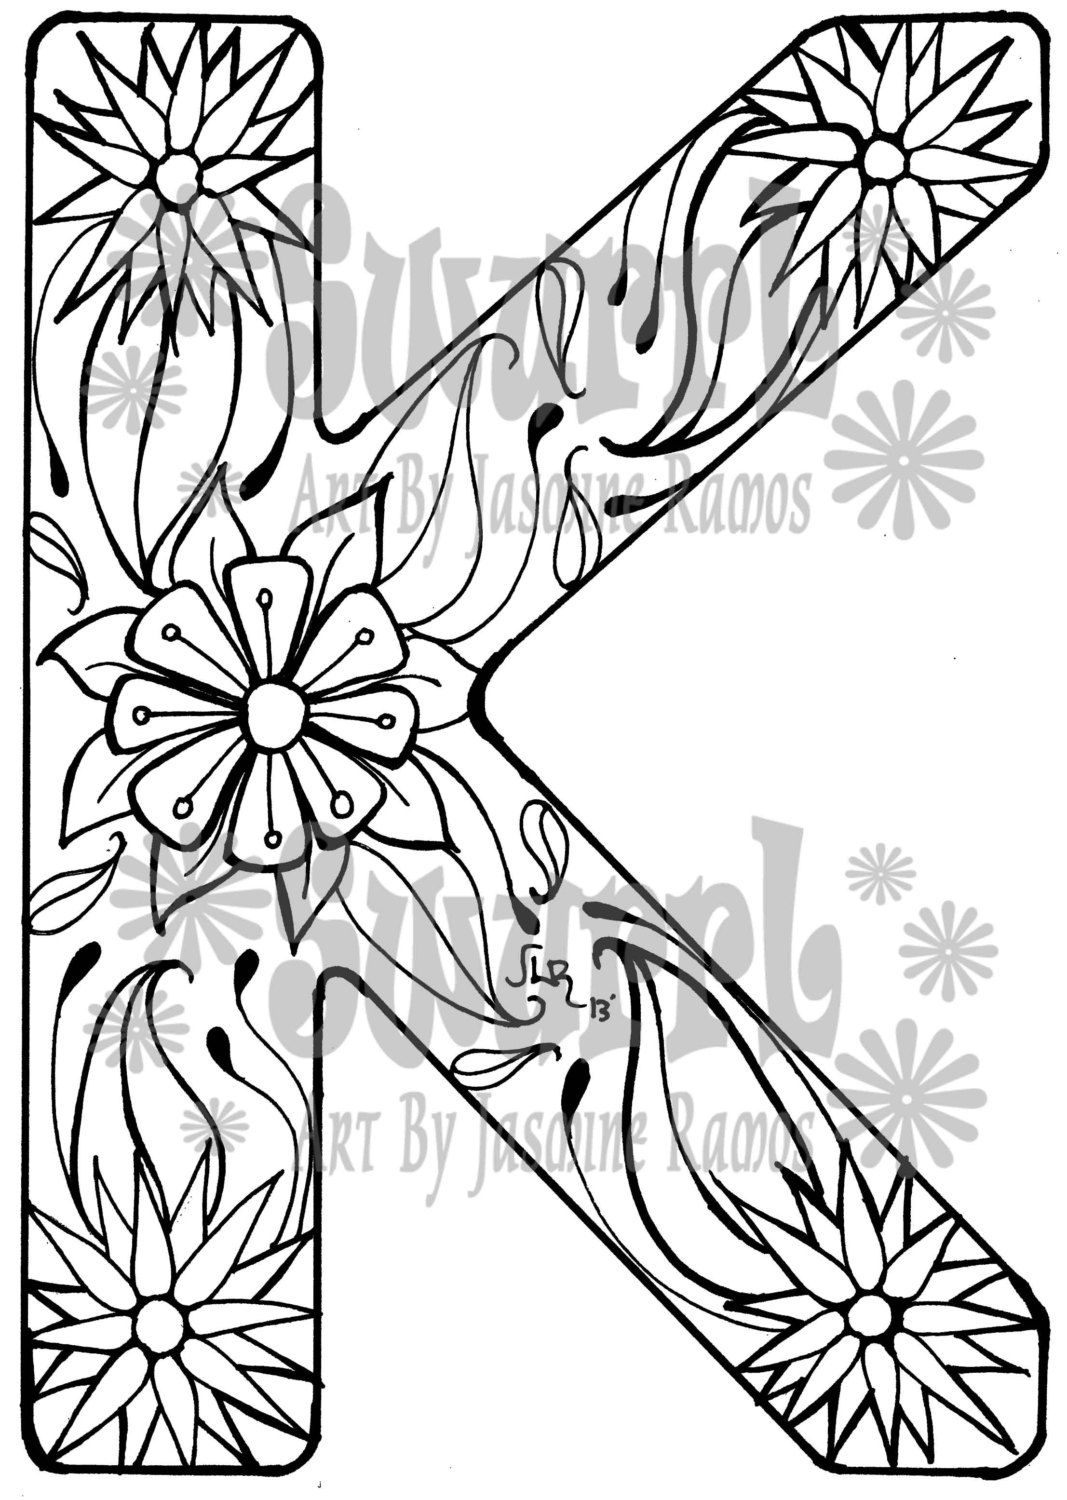 Letter K Coloring Pages Adult Coloring Pages Alphabet Coloring